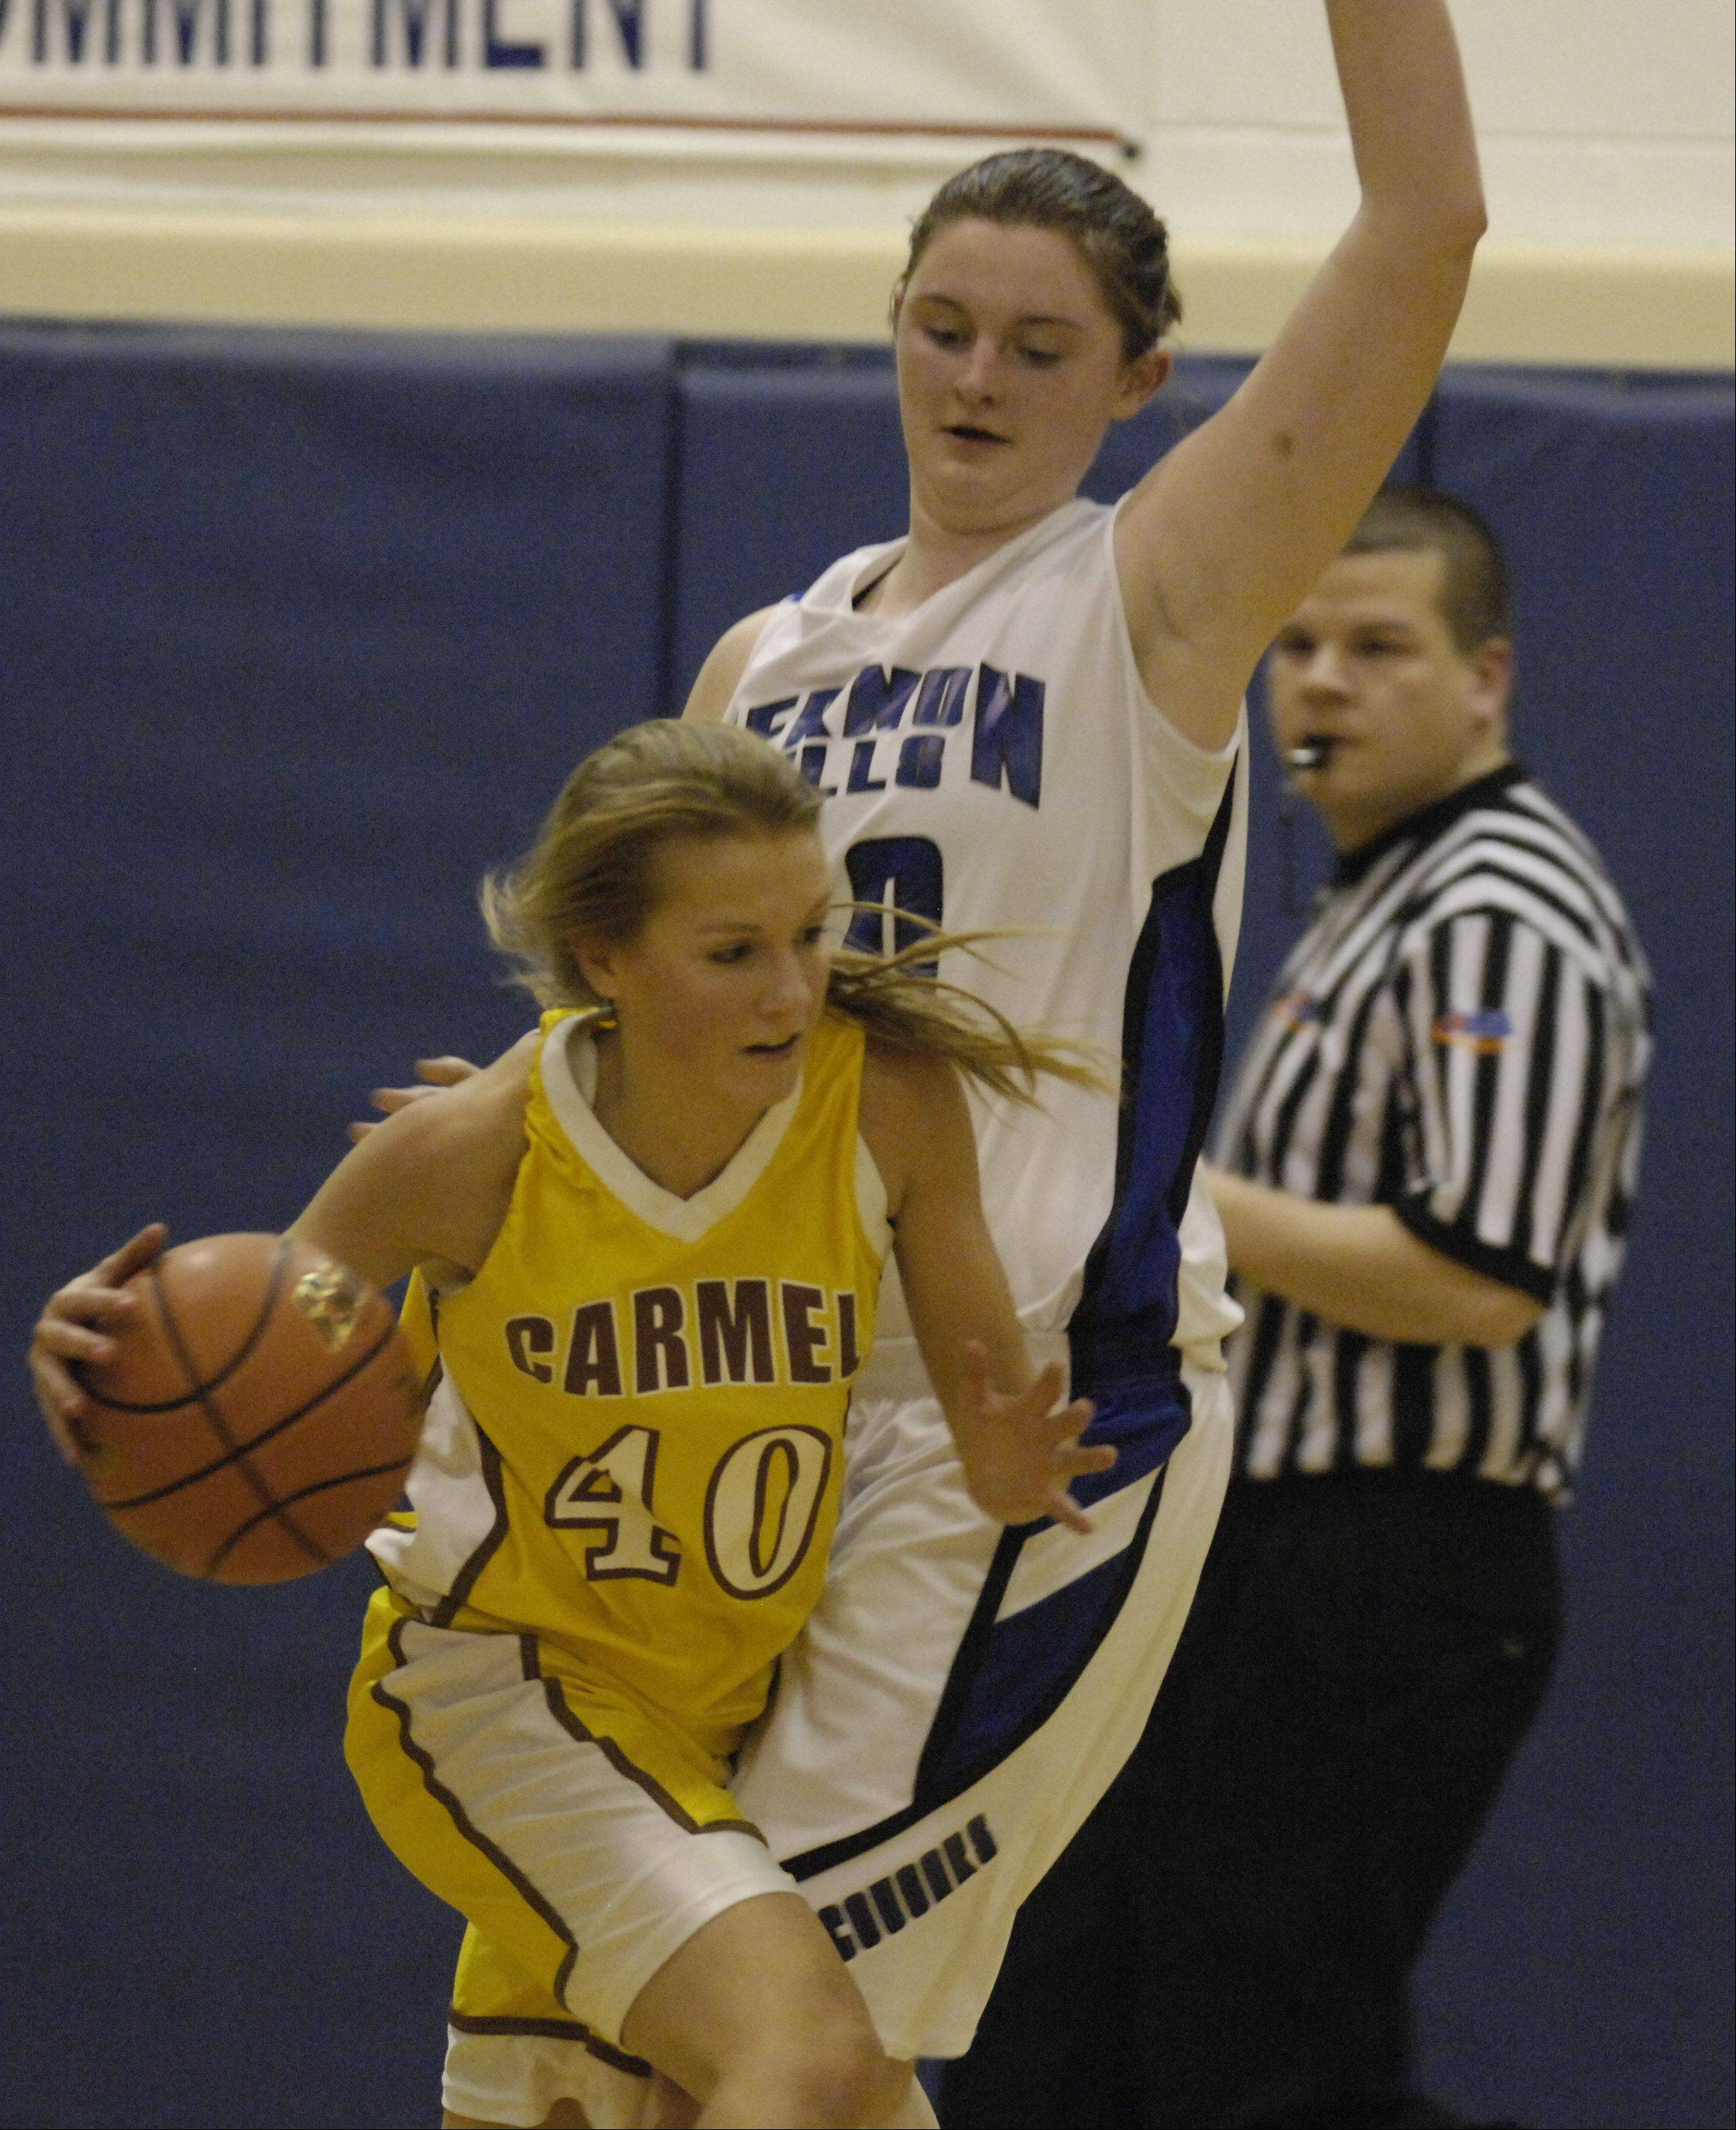 Images from the Vernon Hills vs. Carmel girls sectional semifinal basketball game in Arlington Heights on Tuesday, Feb. 21 , 2012.